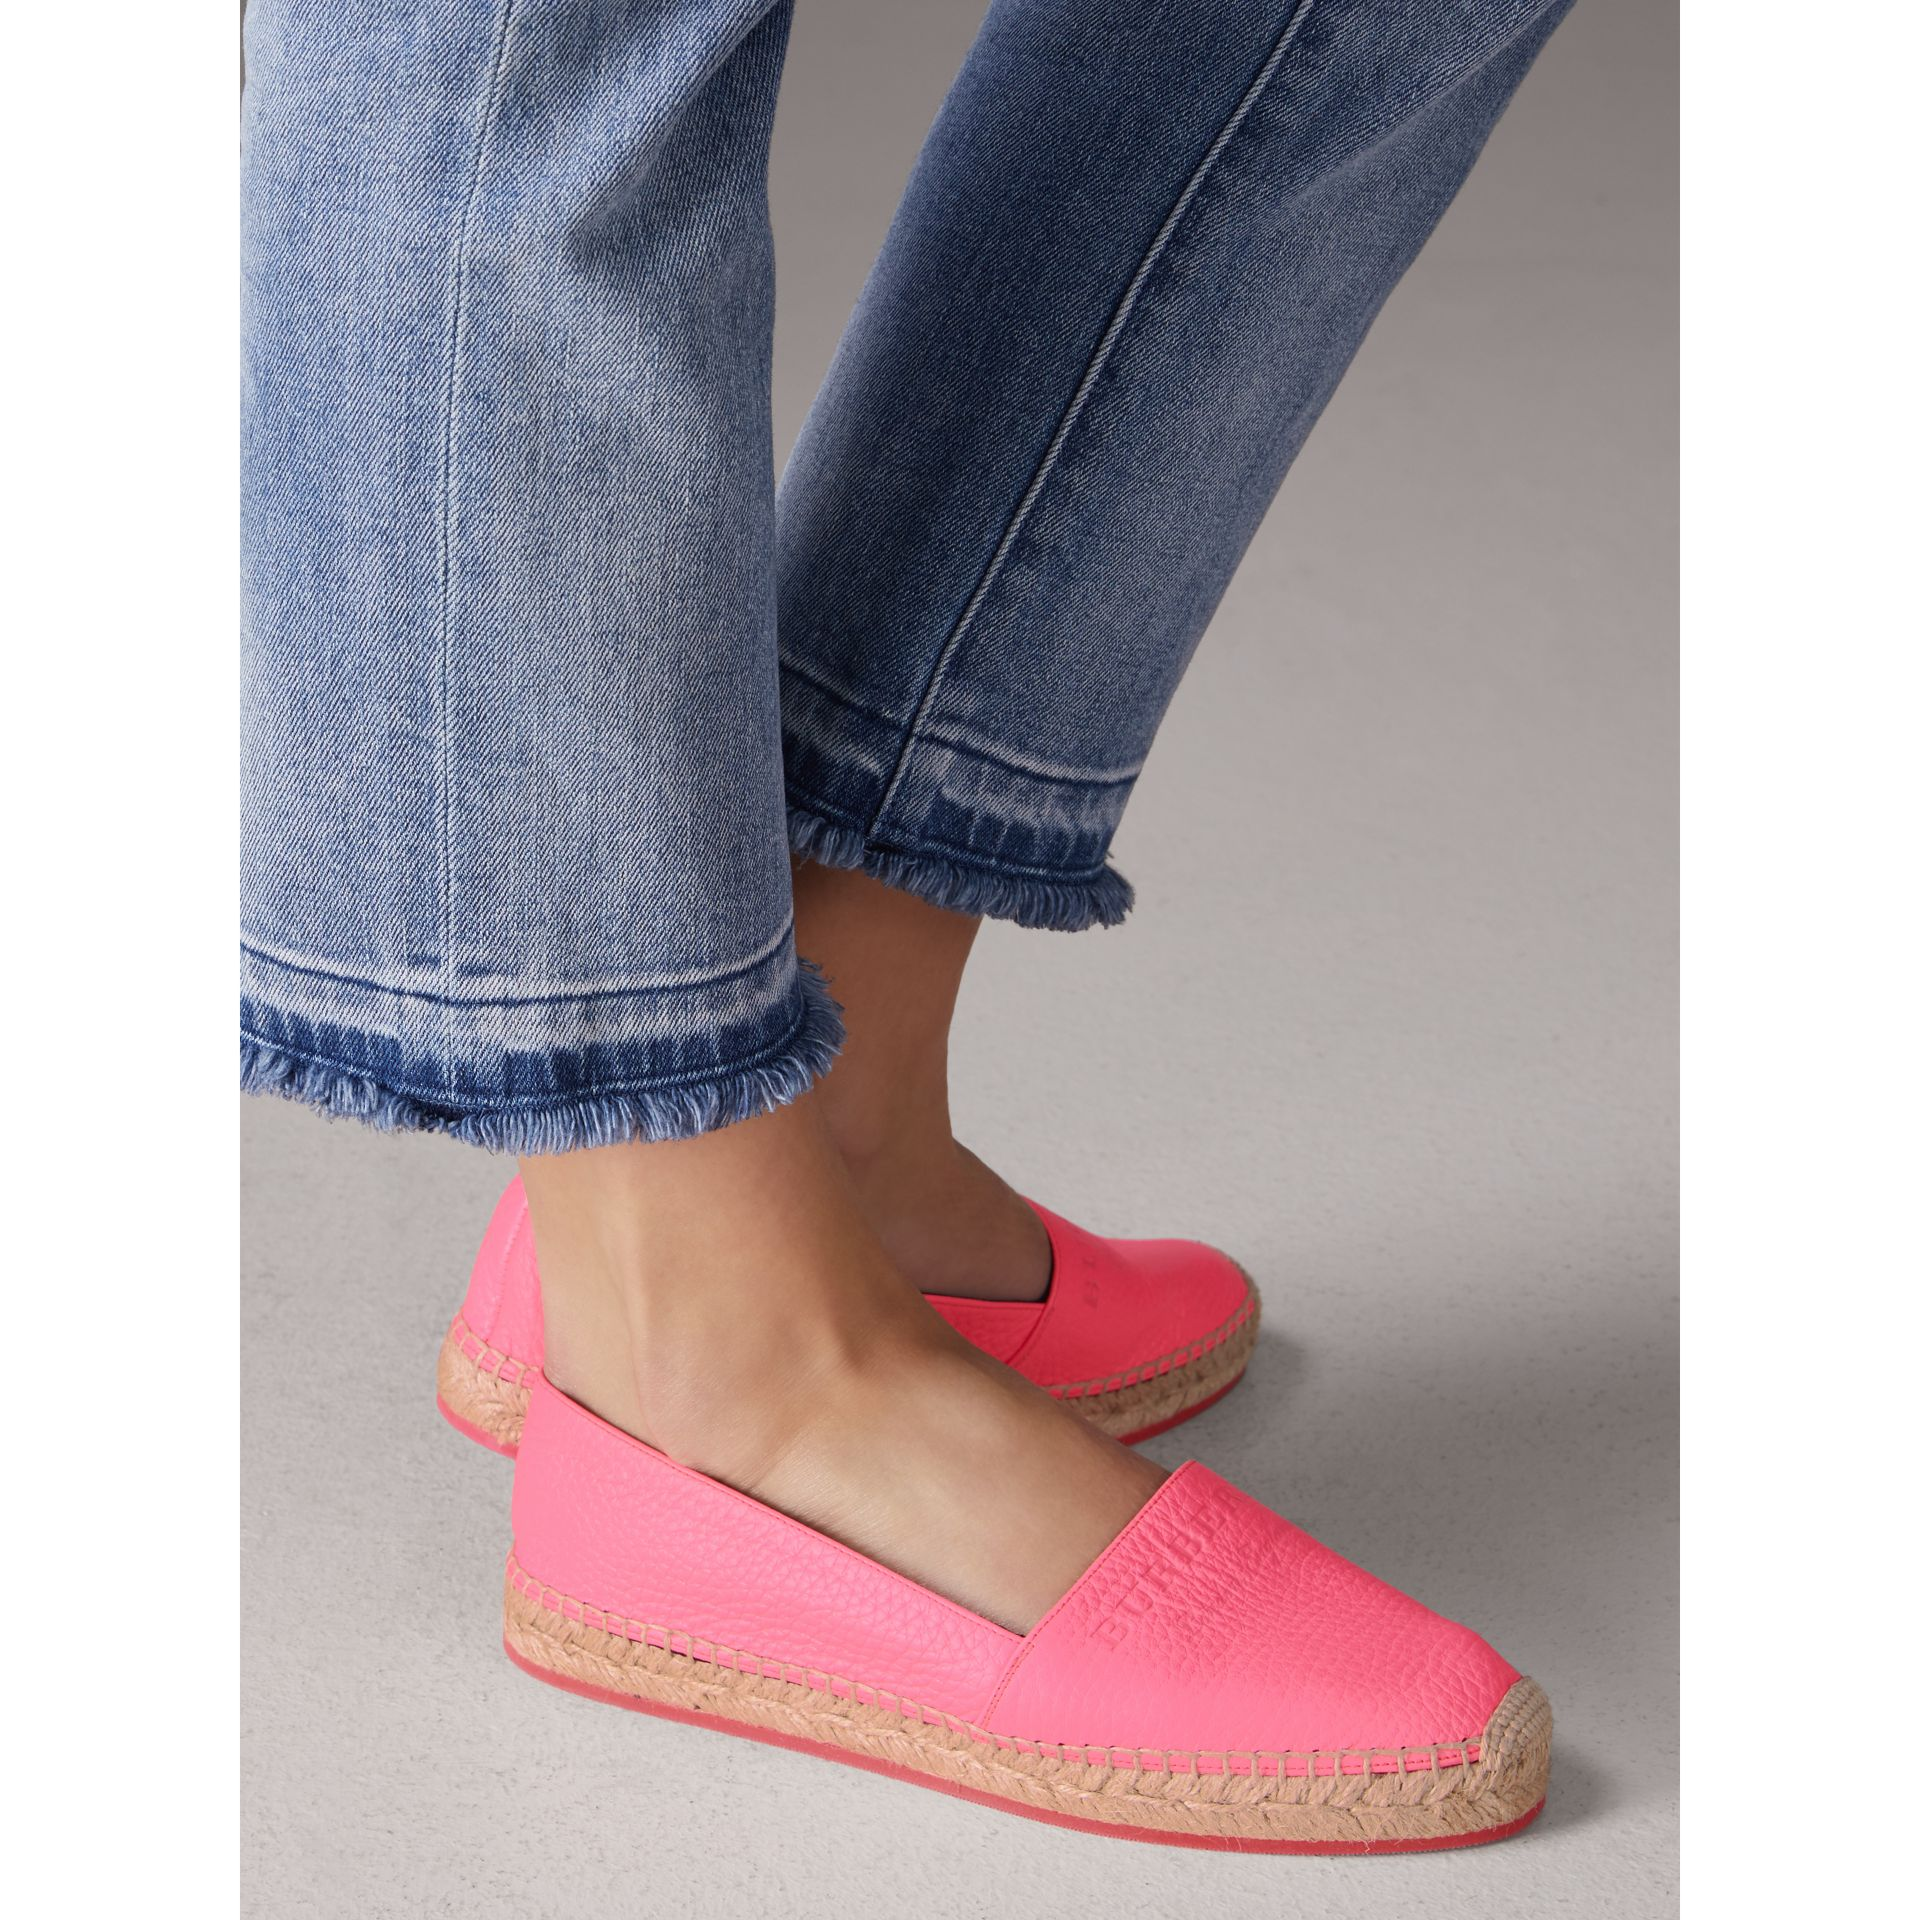 Embossed Grainy Leather Espadrilles in Neon Pink - Women | Burberry - gallery image 2